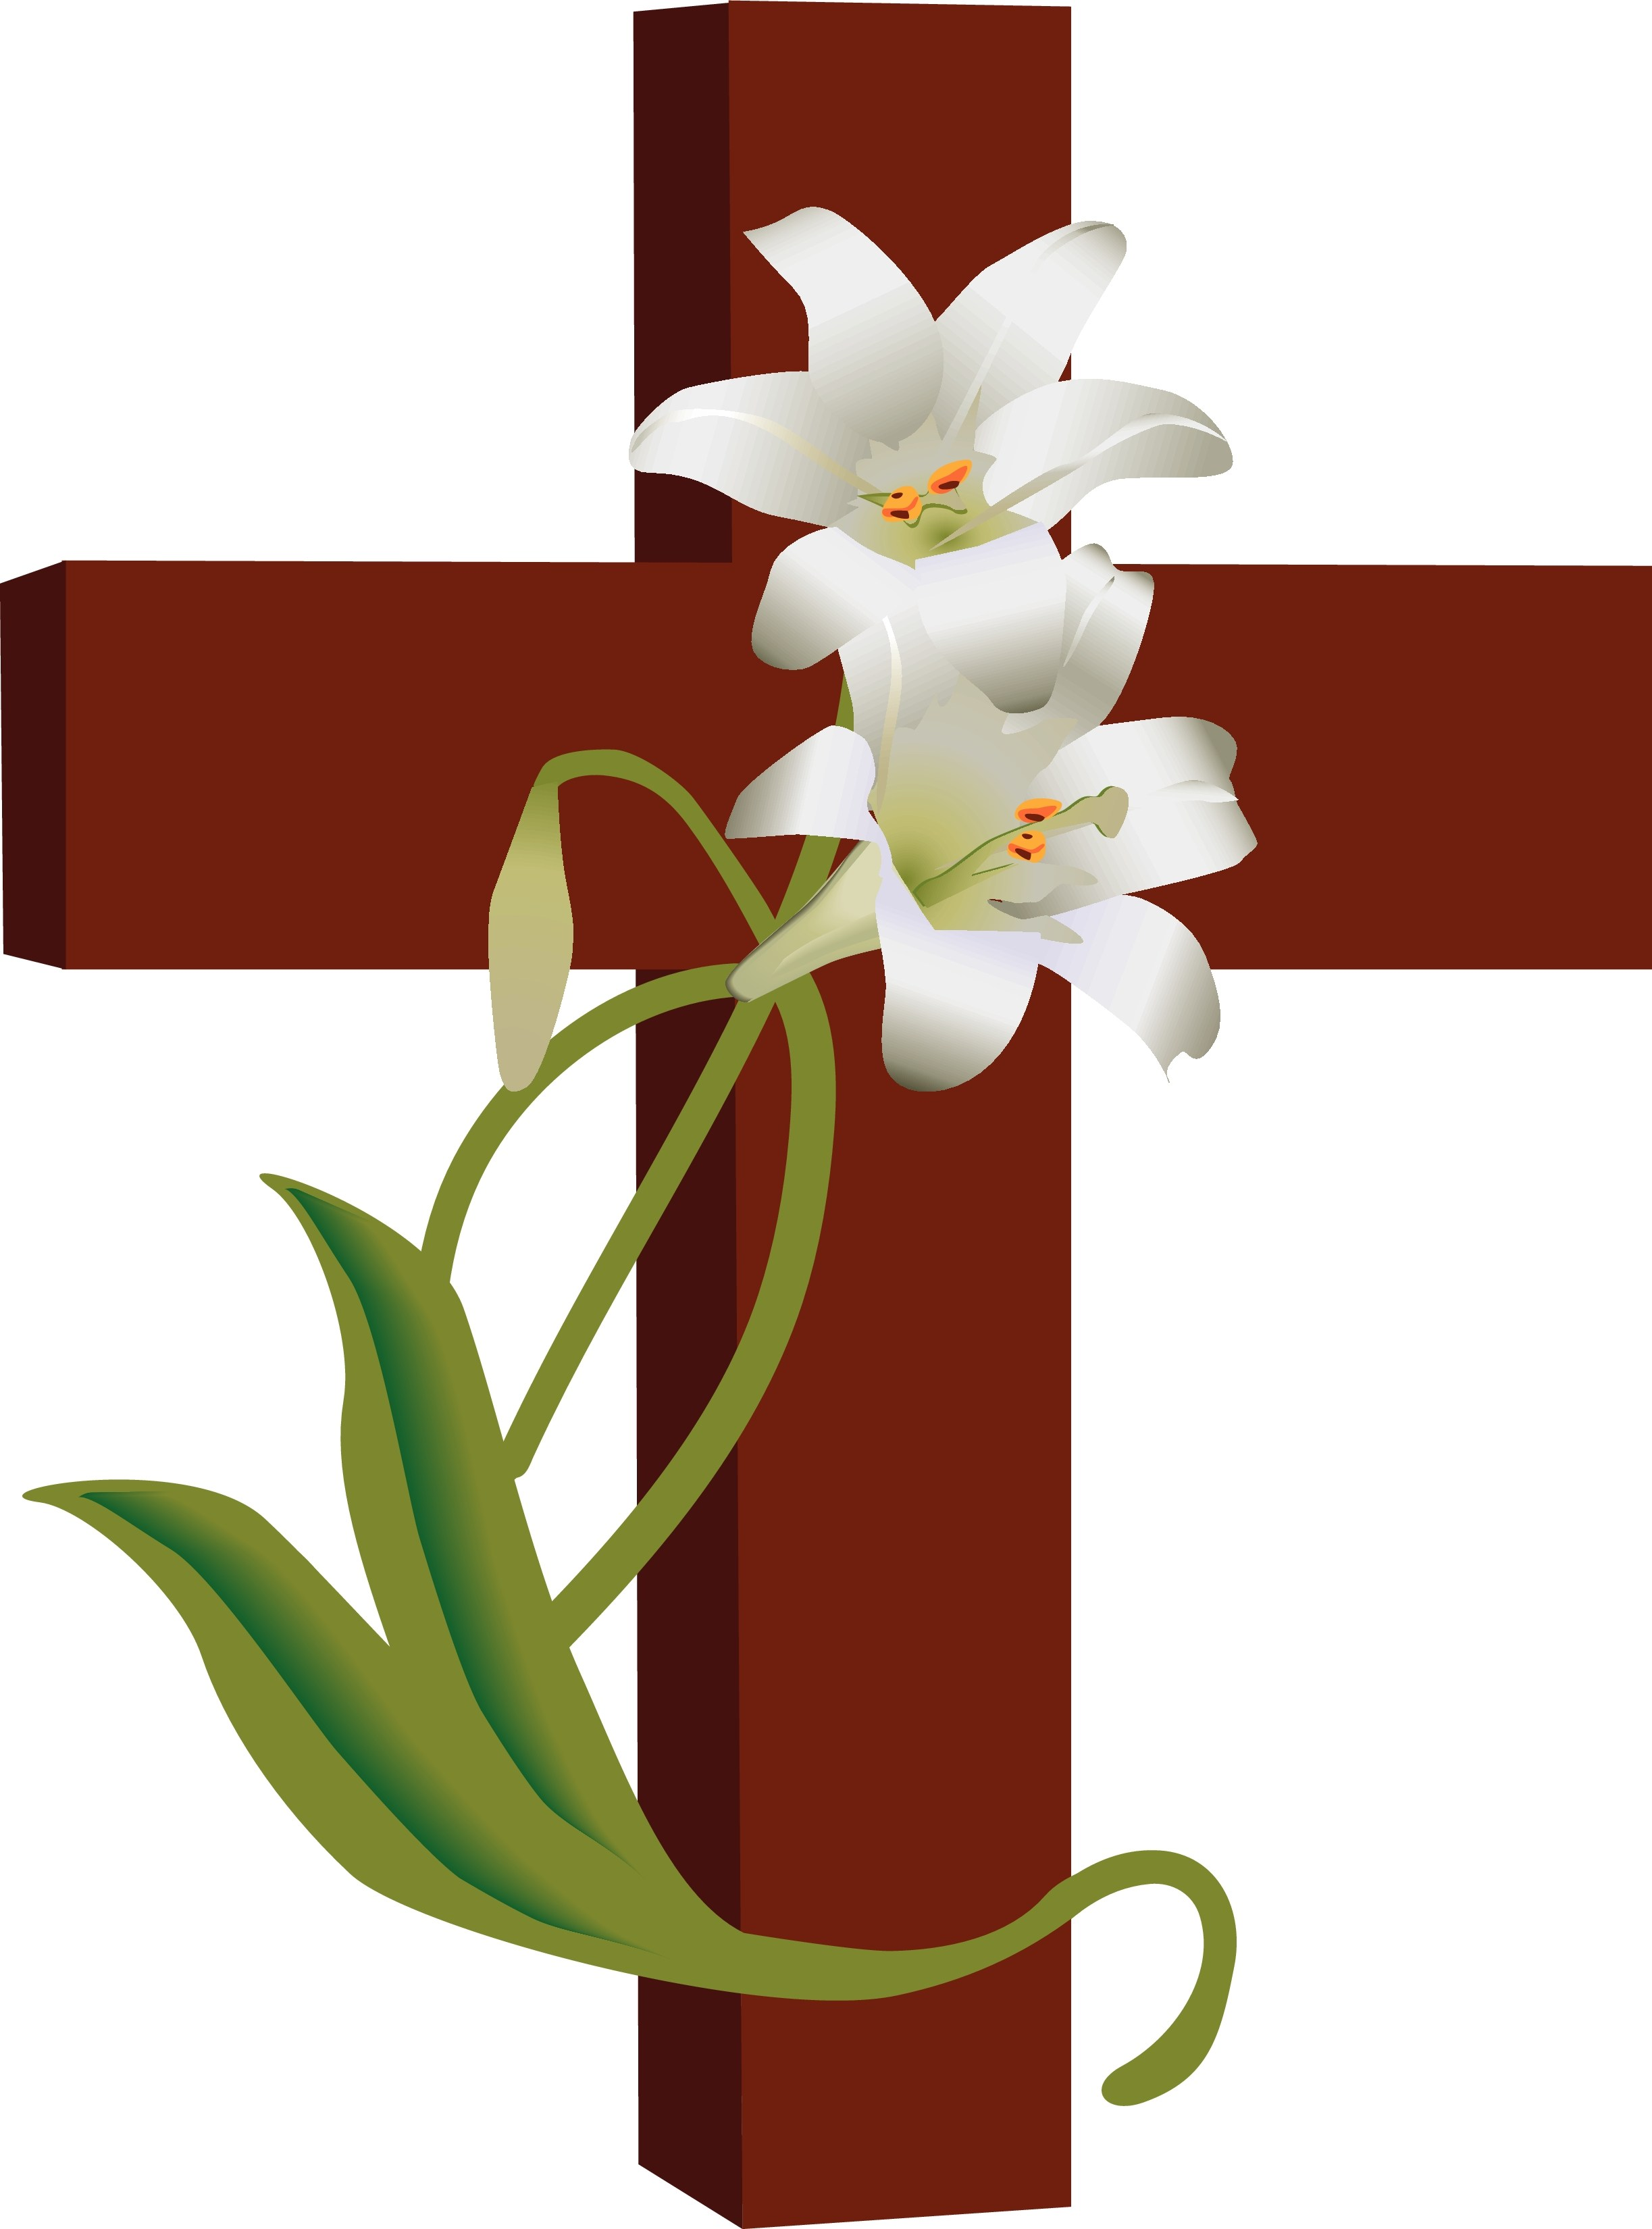 Cross with flowers clipart 7 » Clipart Portal.